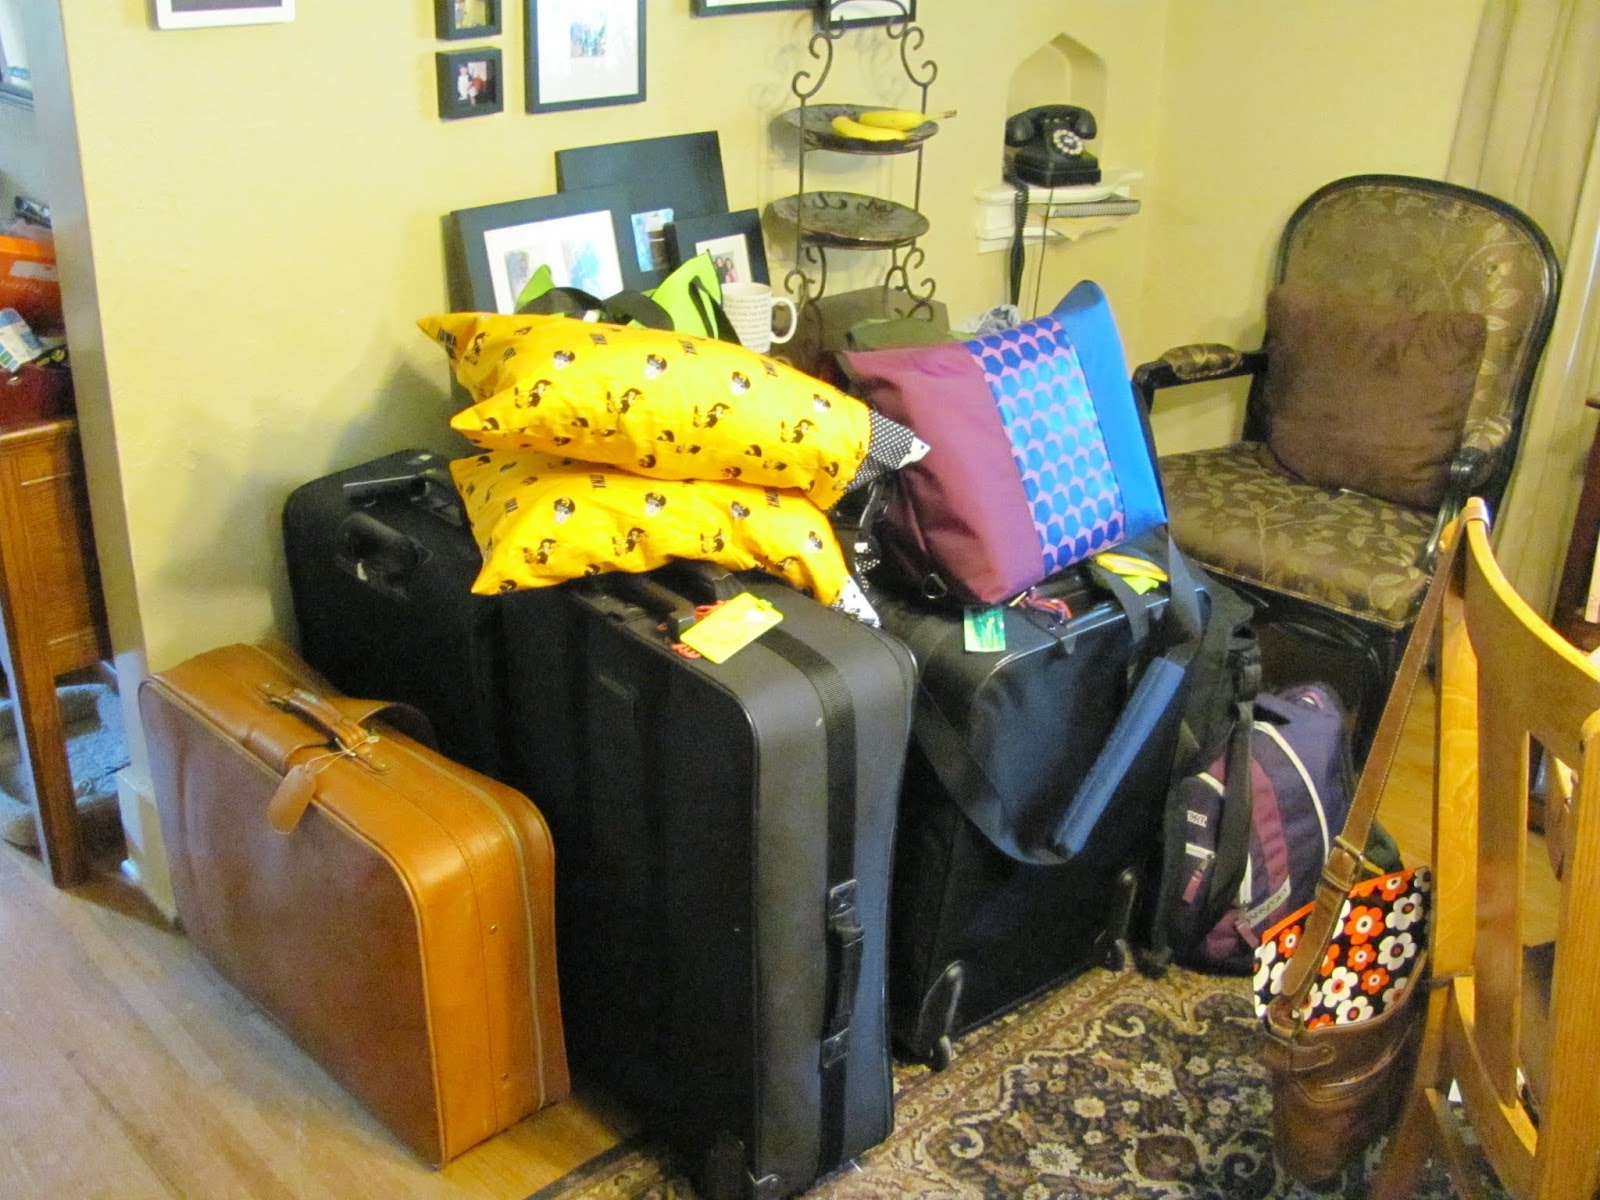 A large pile of suitcases, backpacks, and bags ready to be loaded into the car going to the airport